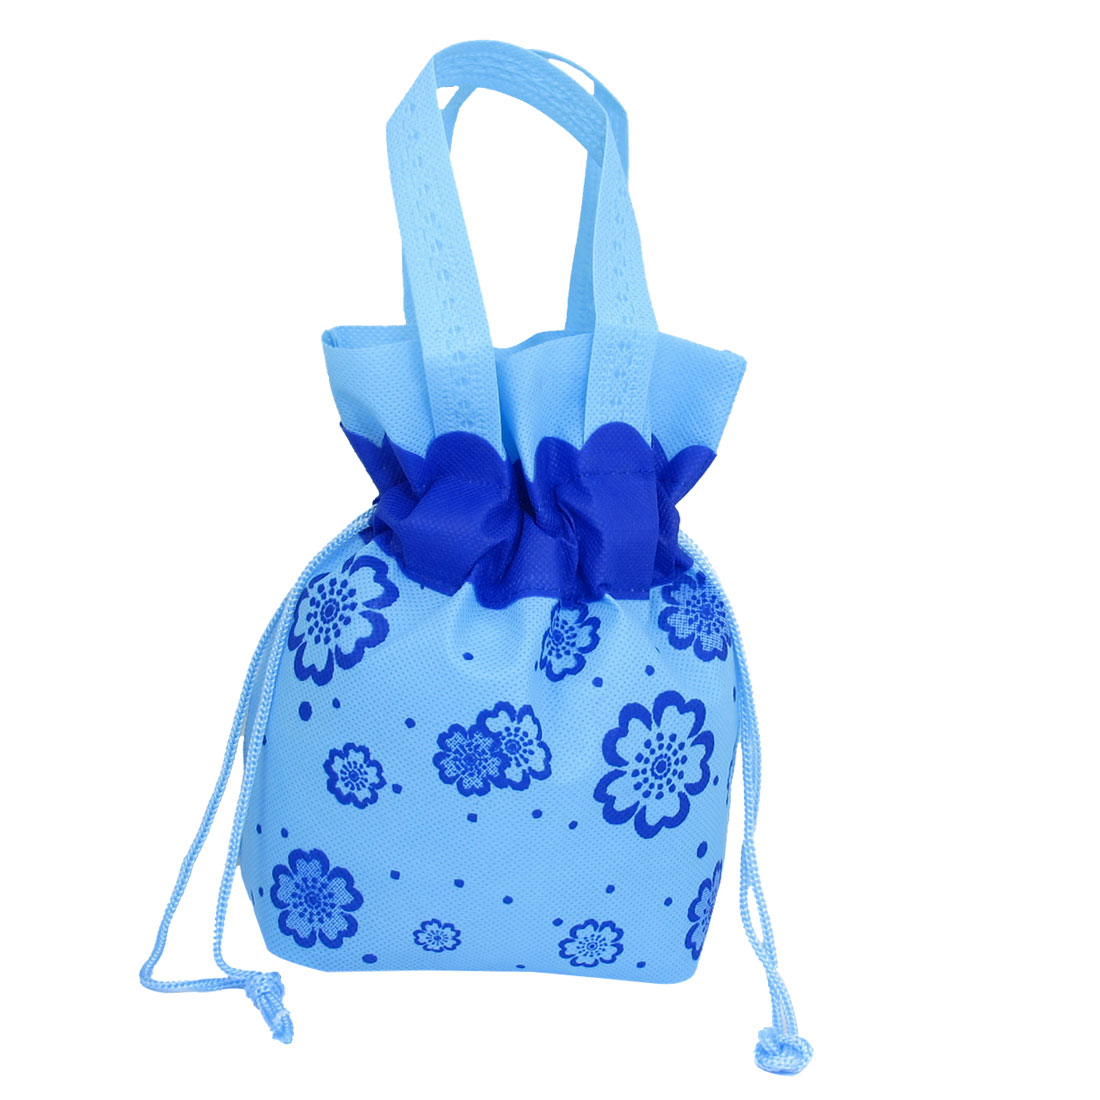 Reusable Floral Printed Water Resistant Shopping Totes Handbag Light Blue